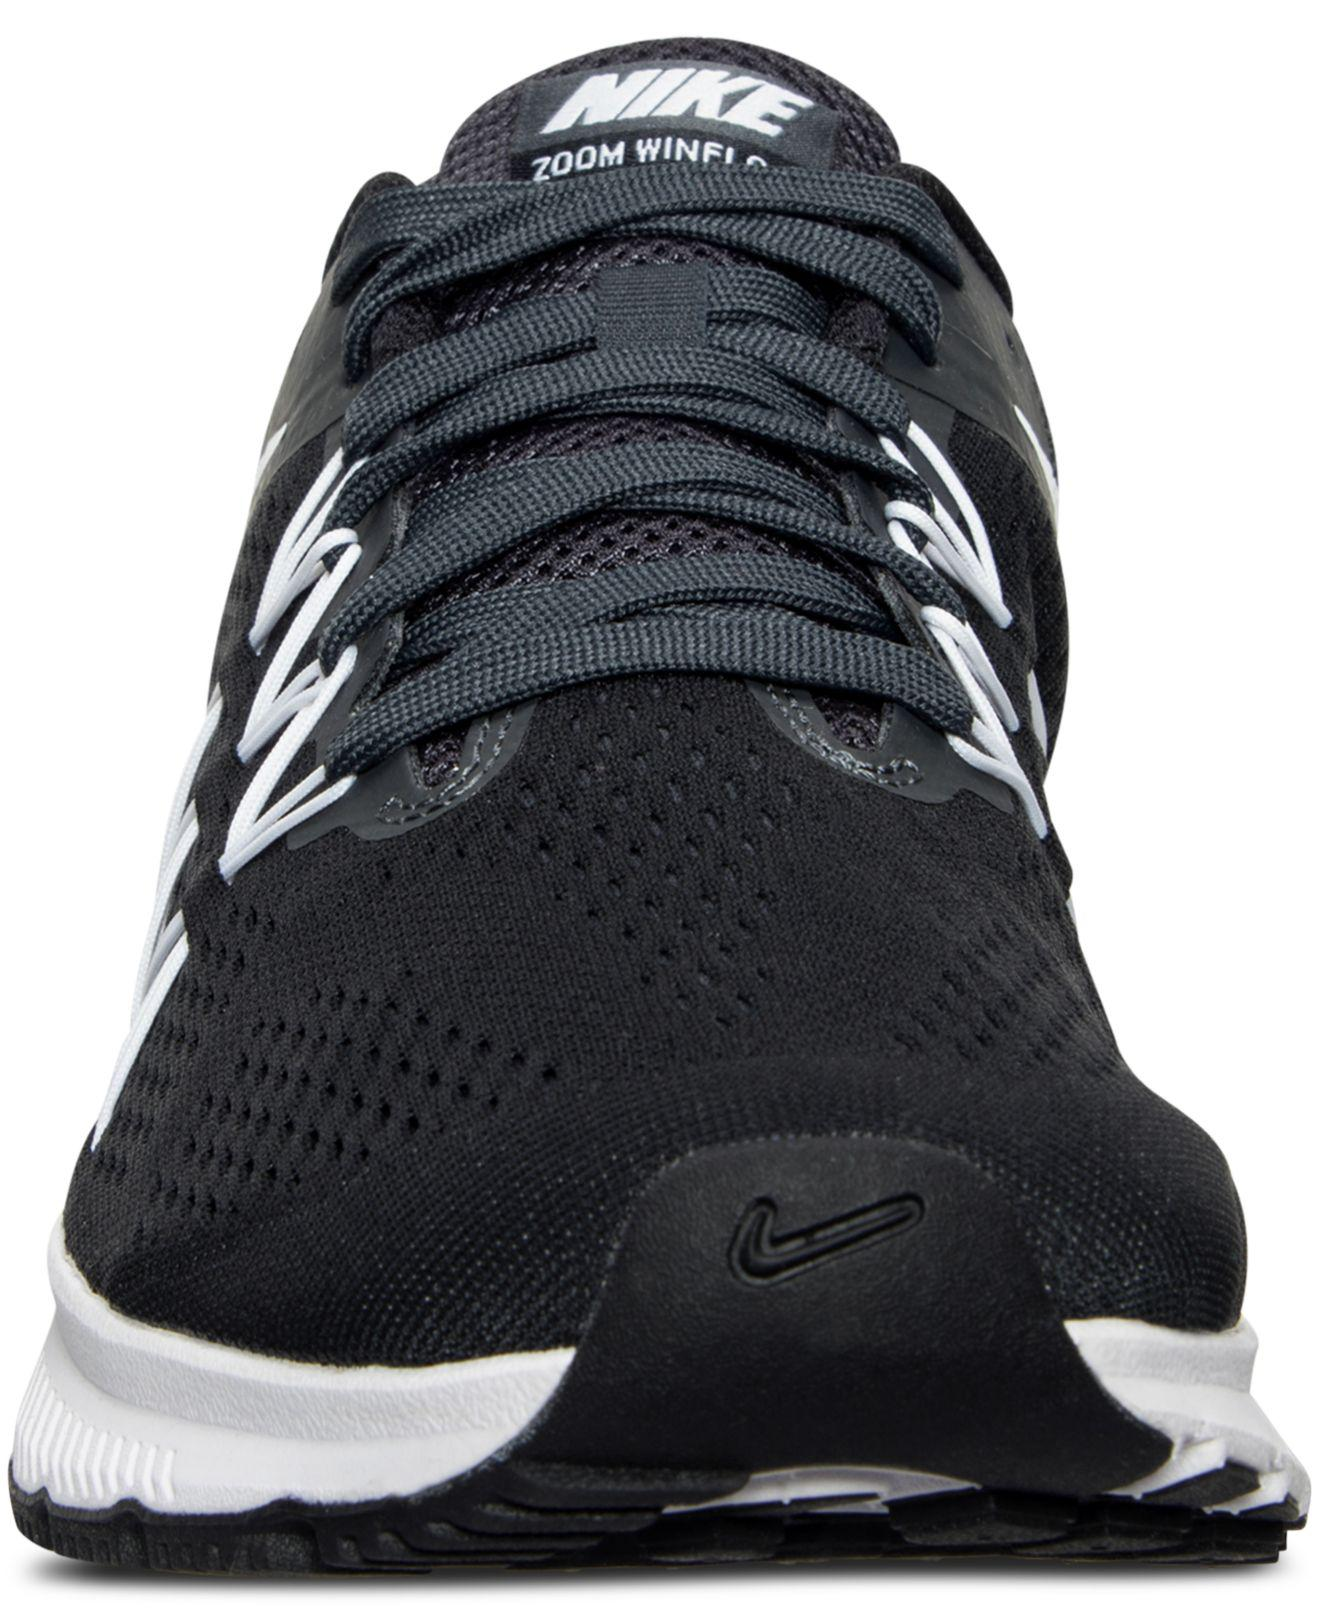 1ecb699fba705 Lyst - Nike Men s Air Zoom Winflo 3 Running Sneakers From Finish ...